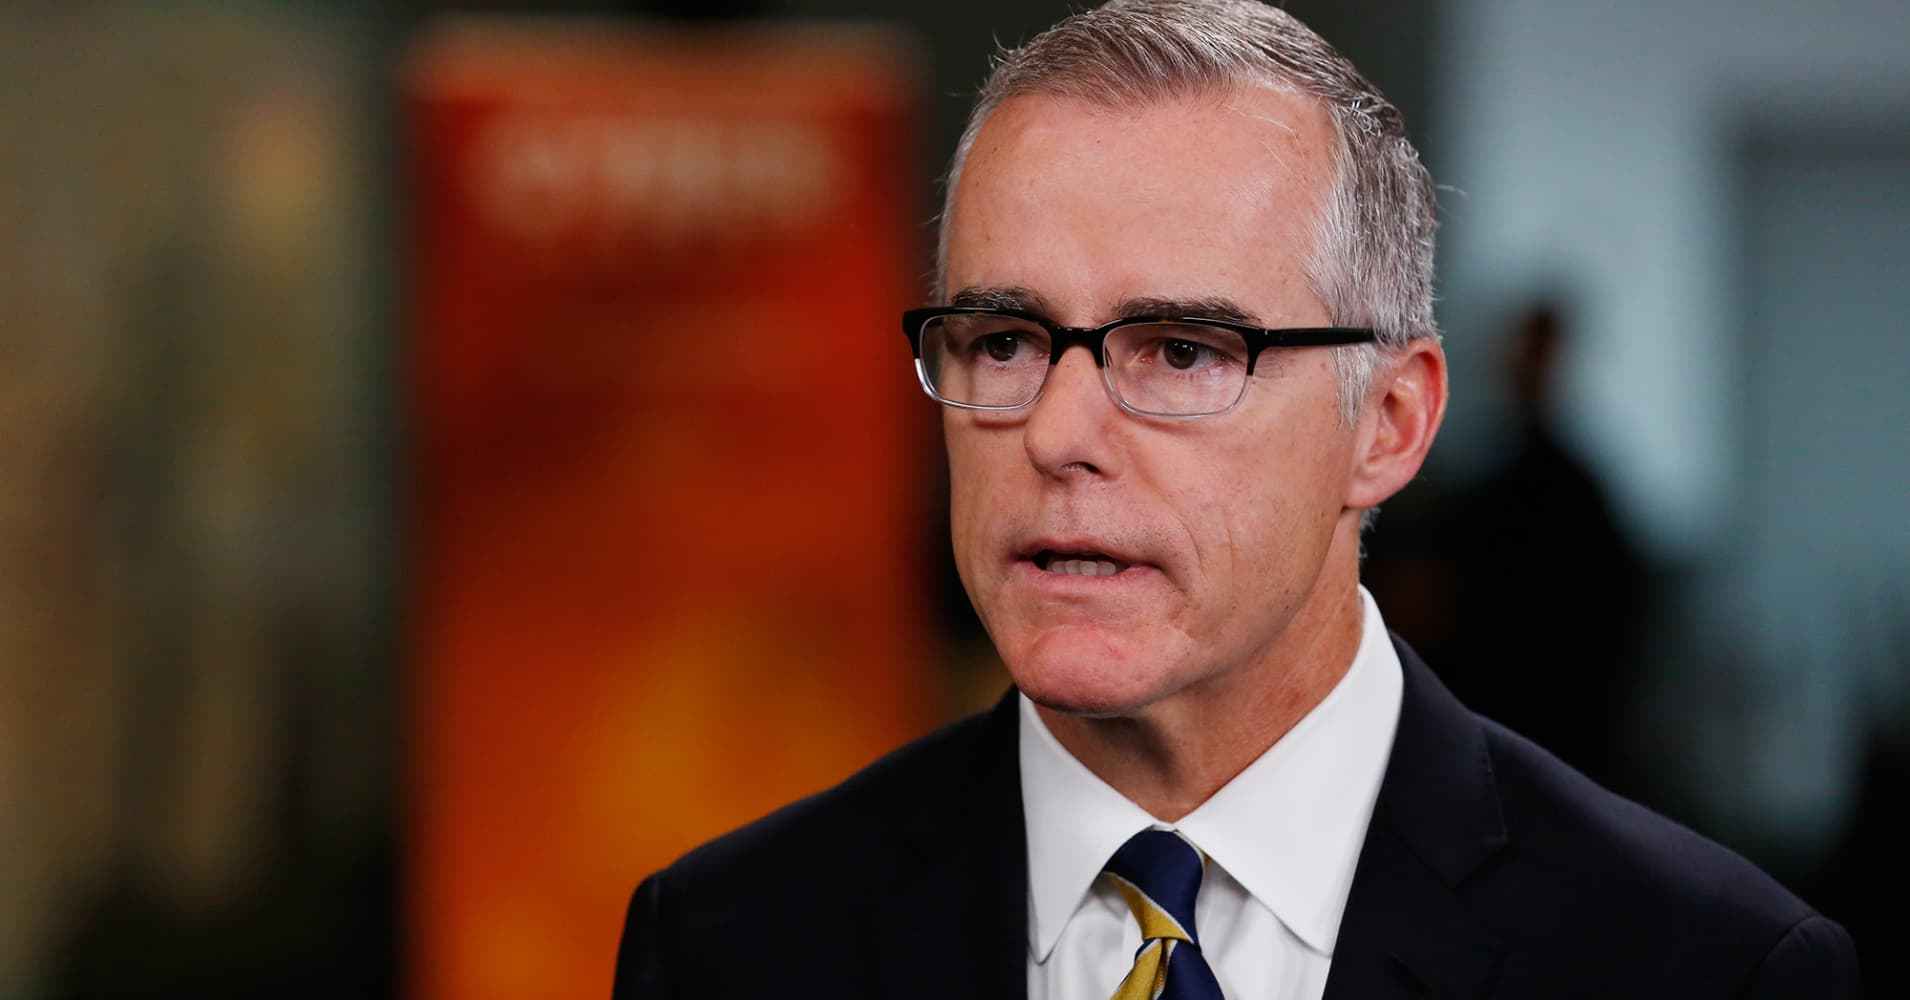 Andrew McCabe: No one in Gang of 8 objected to FBI probe of Trump